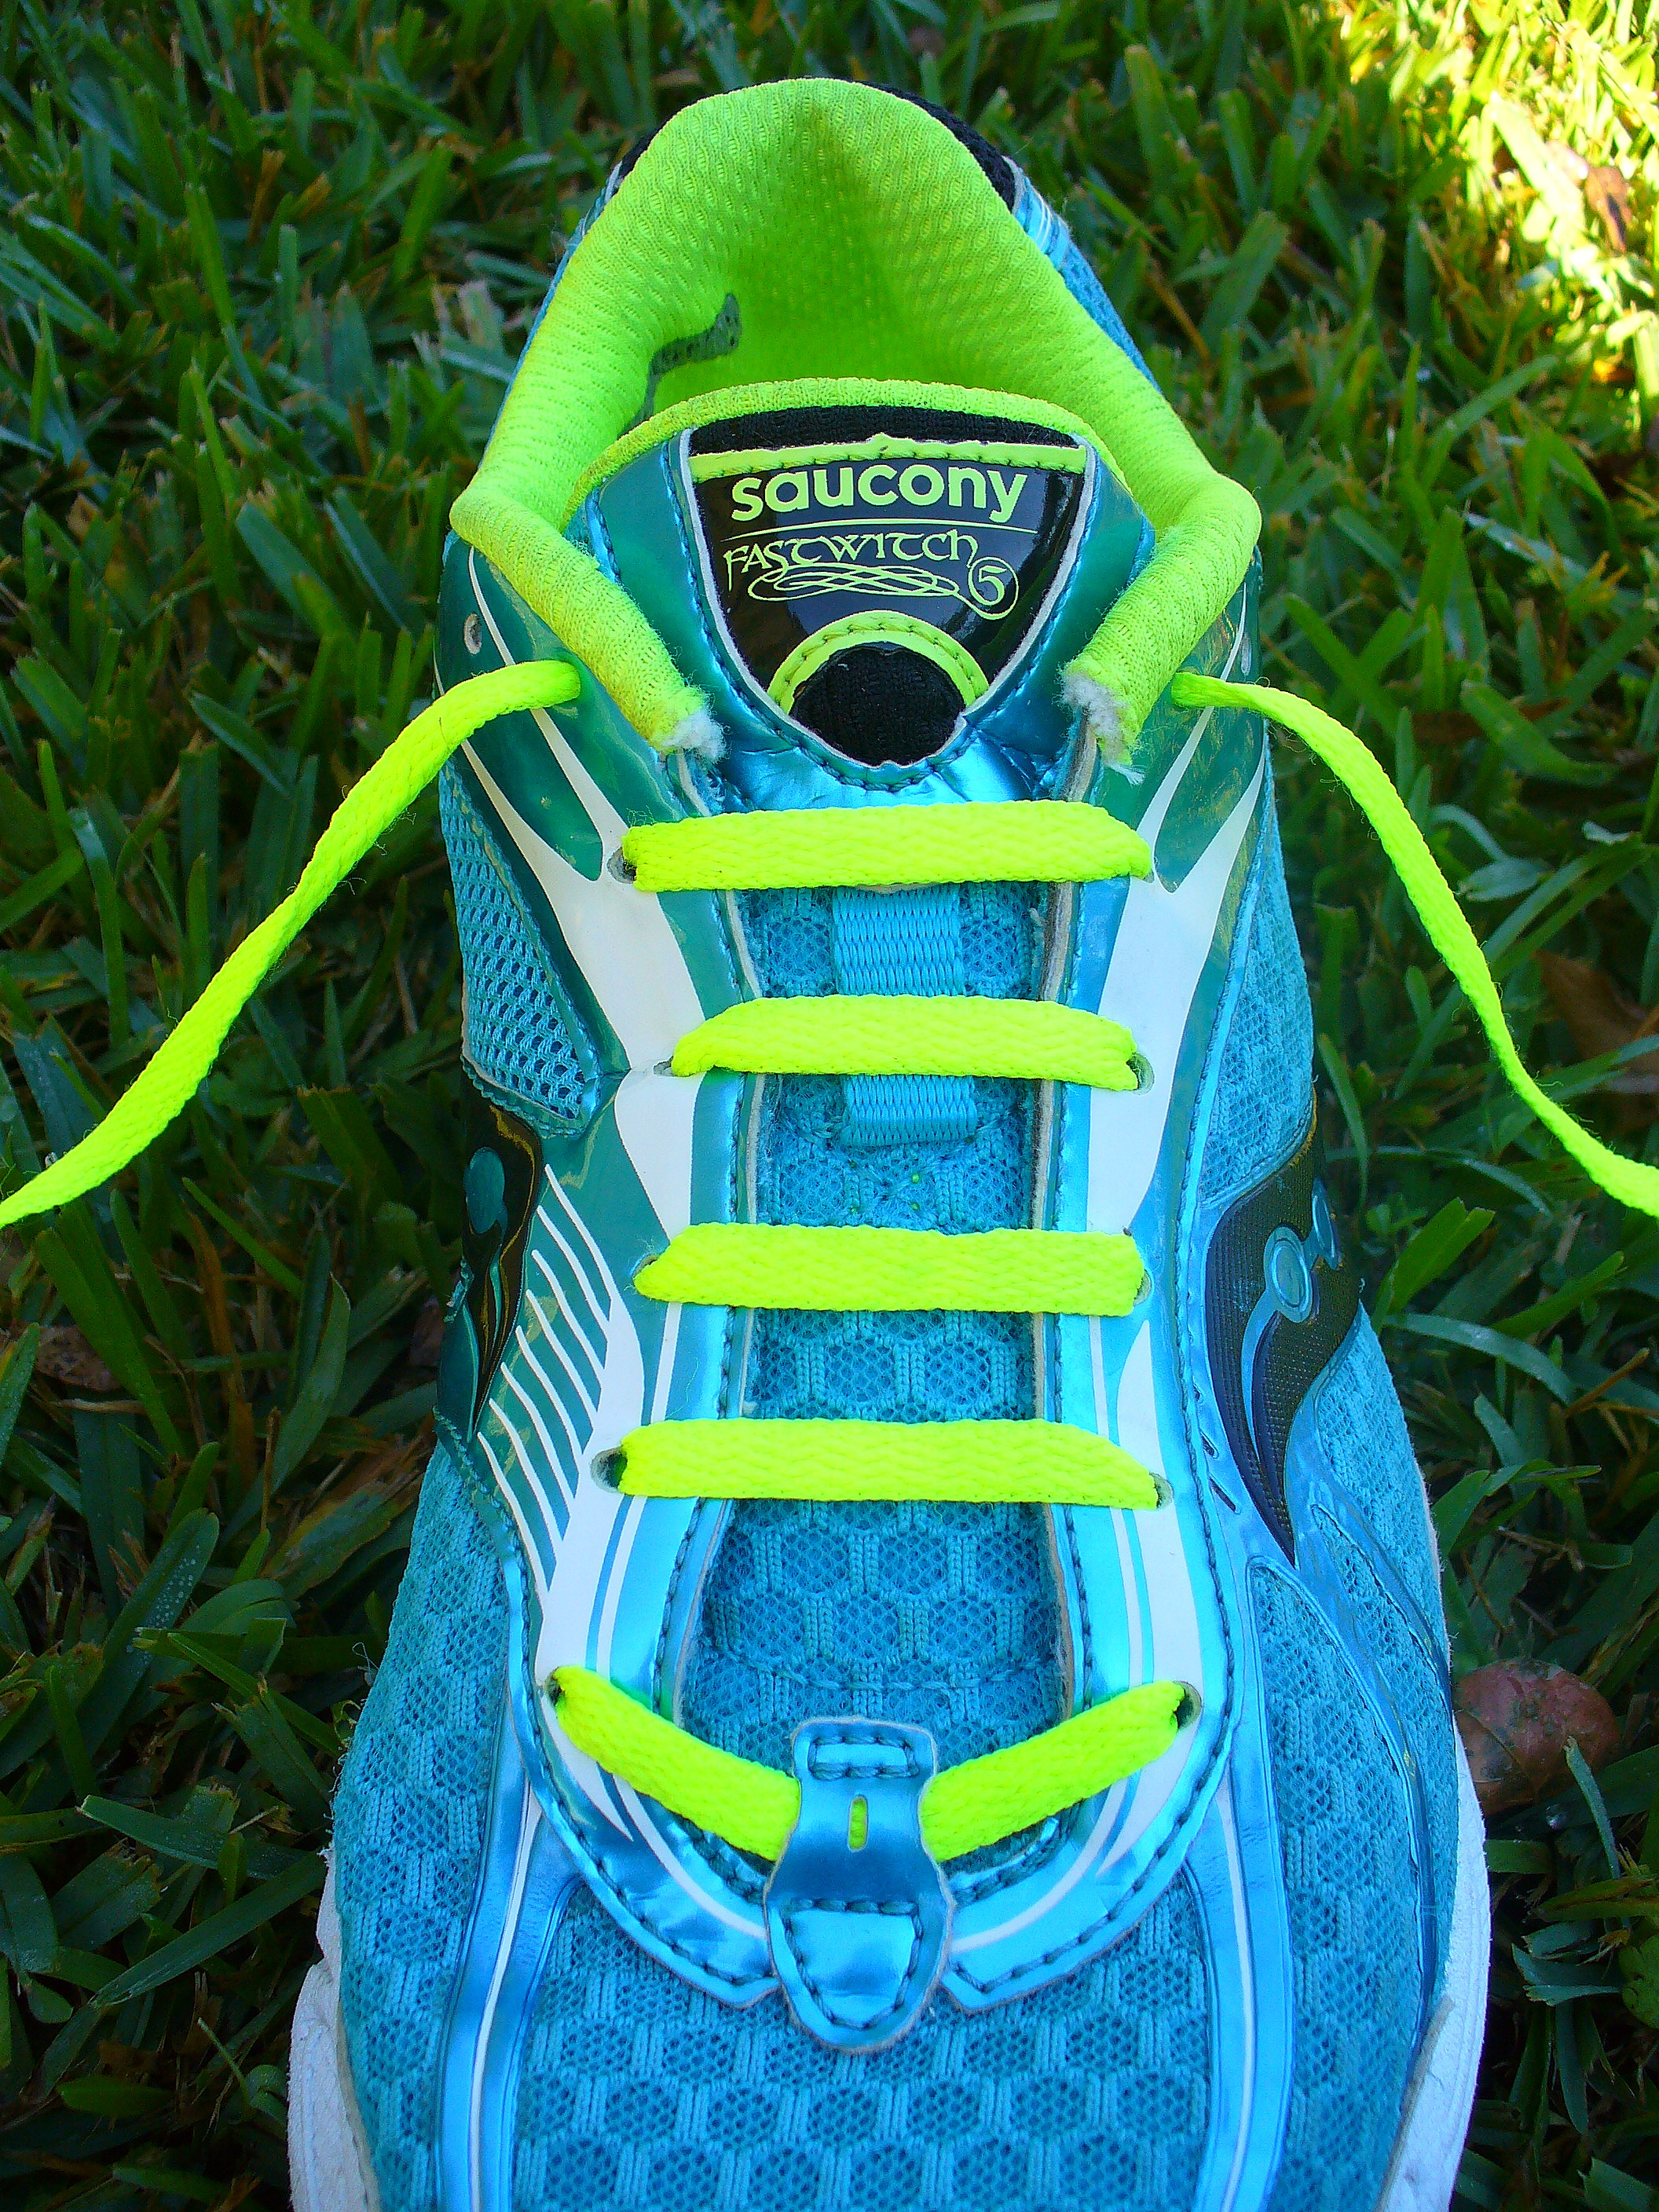 Lacing Up Shoes For Wide Feet